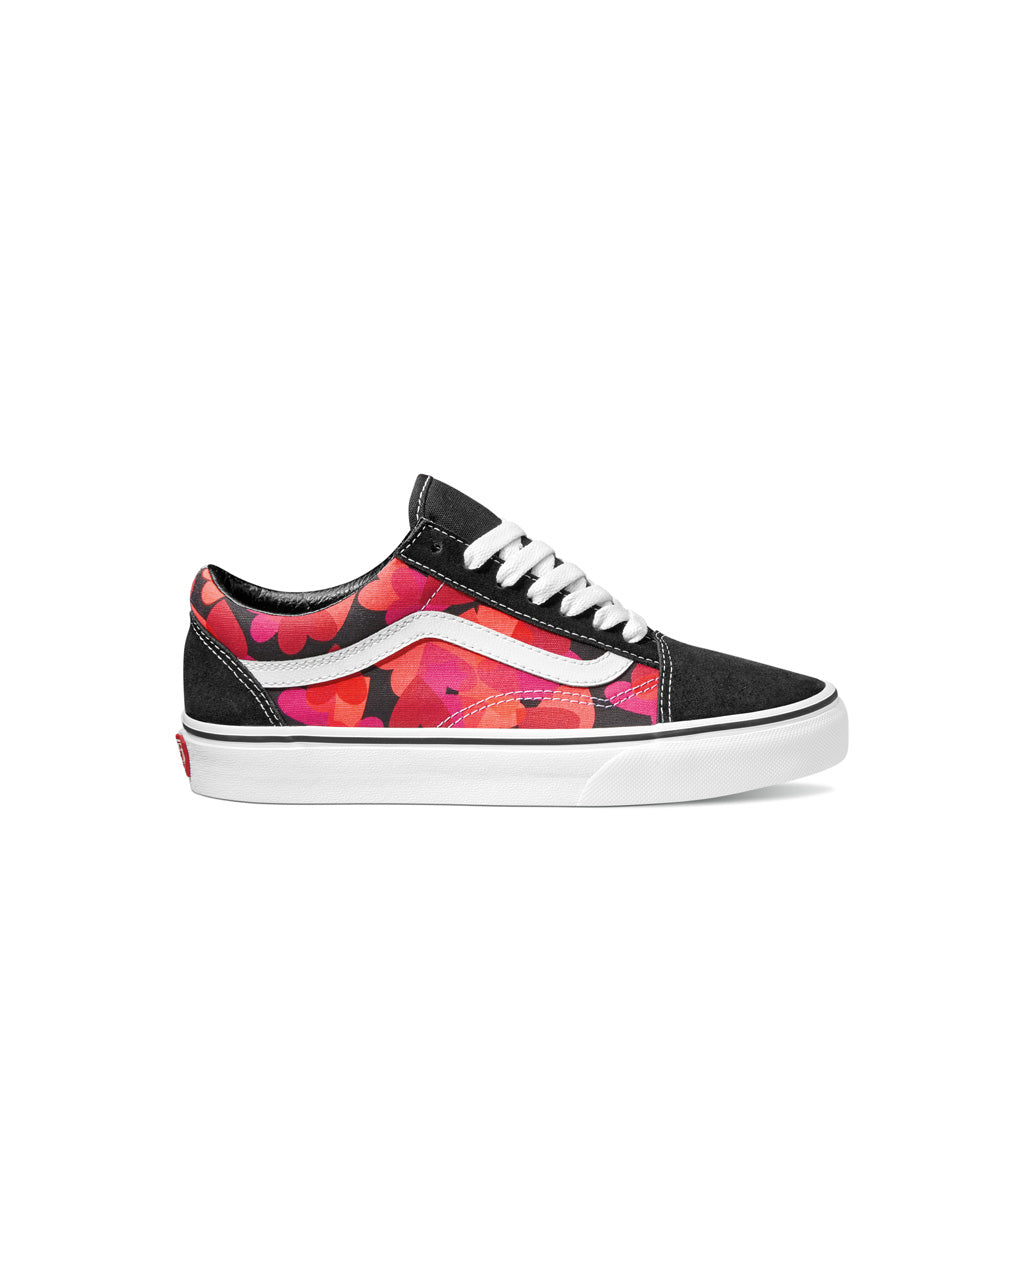 old skool vans with red and pink heart pattern with black toe and heel and white sole